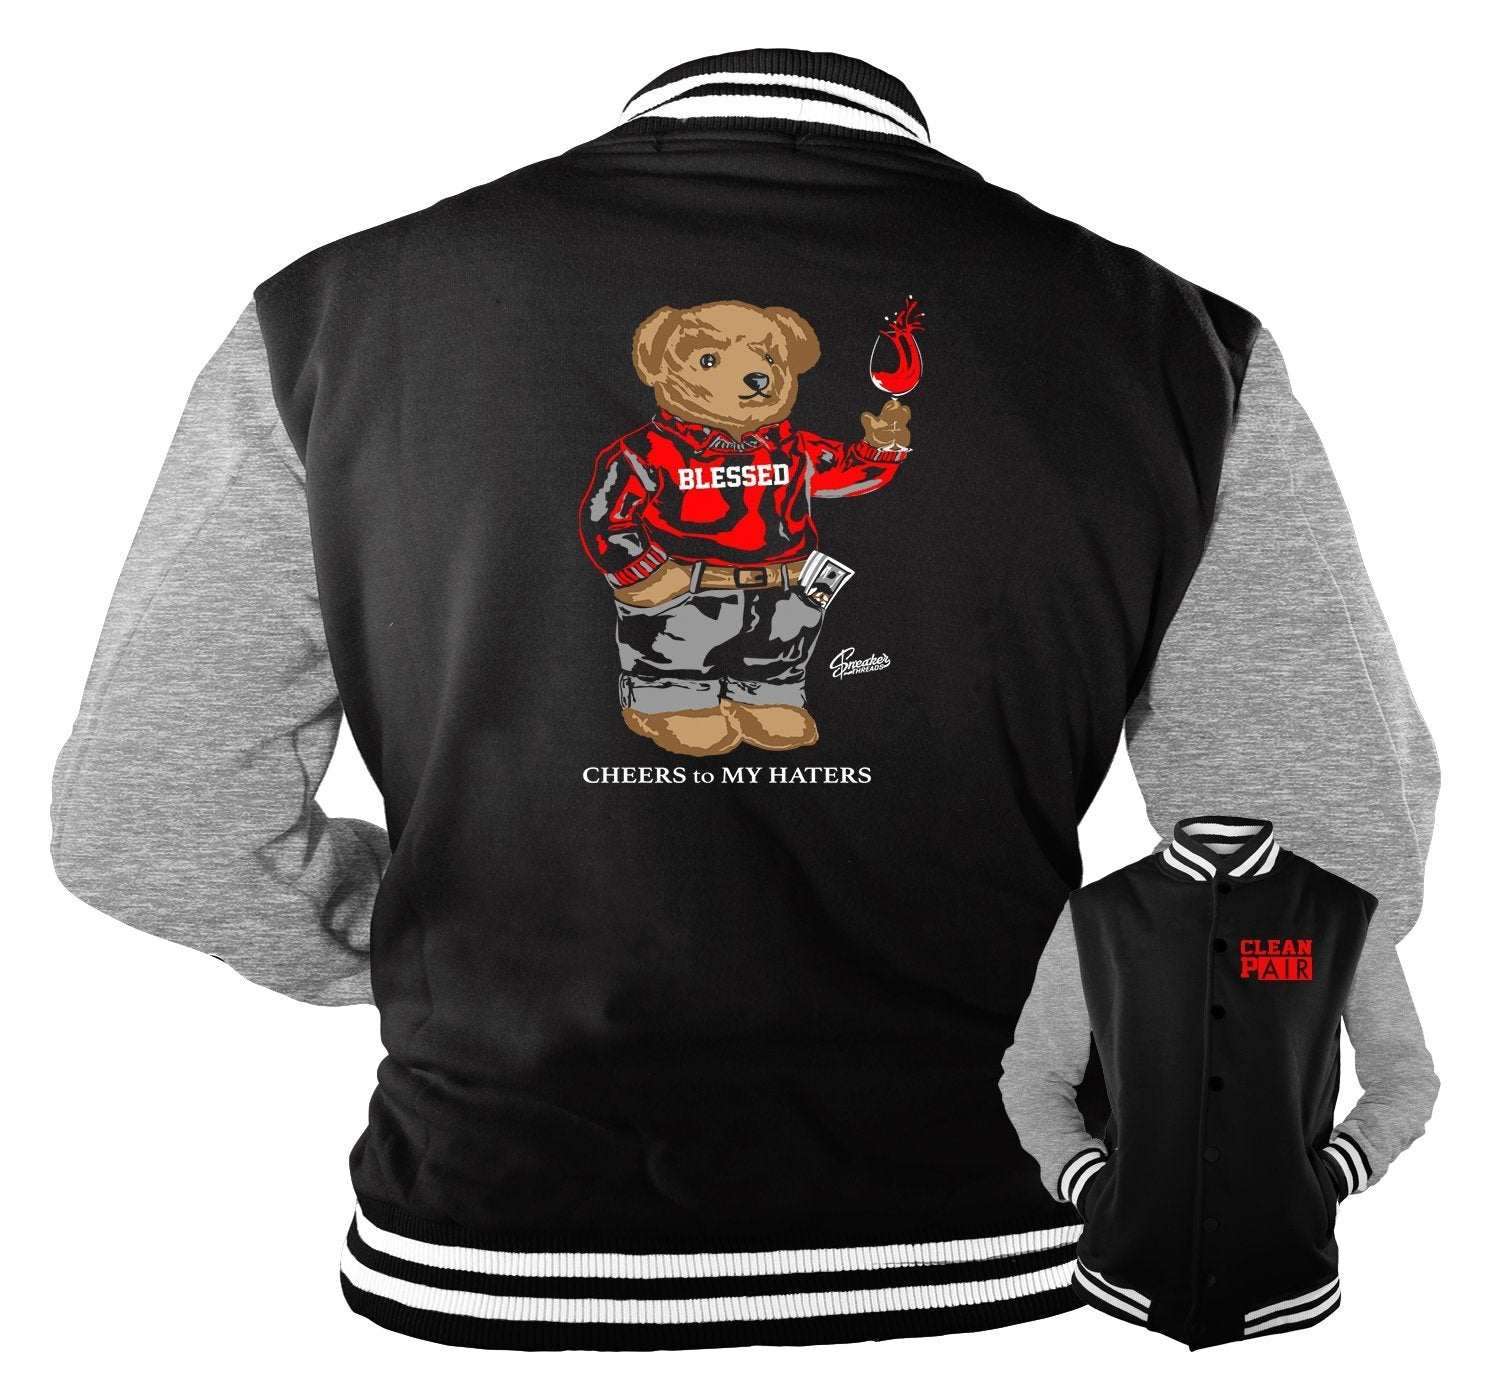 Jordan 14 quilted Bear Jacket for winter fit